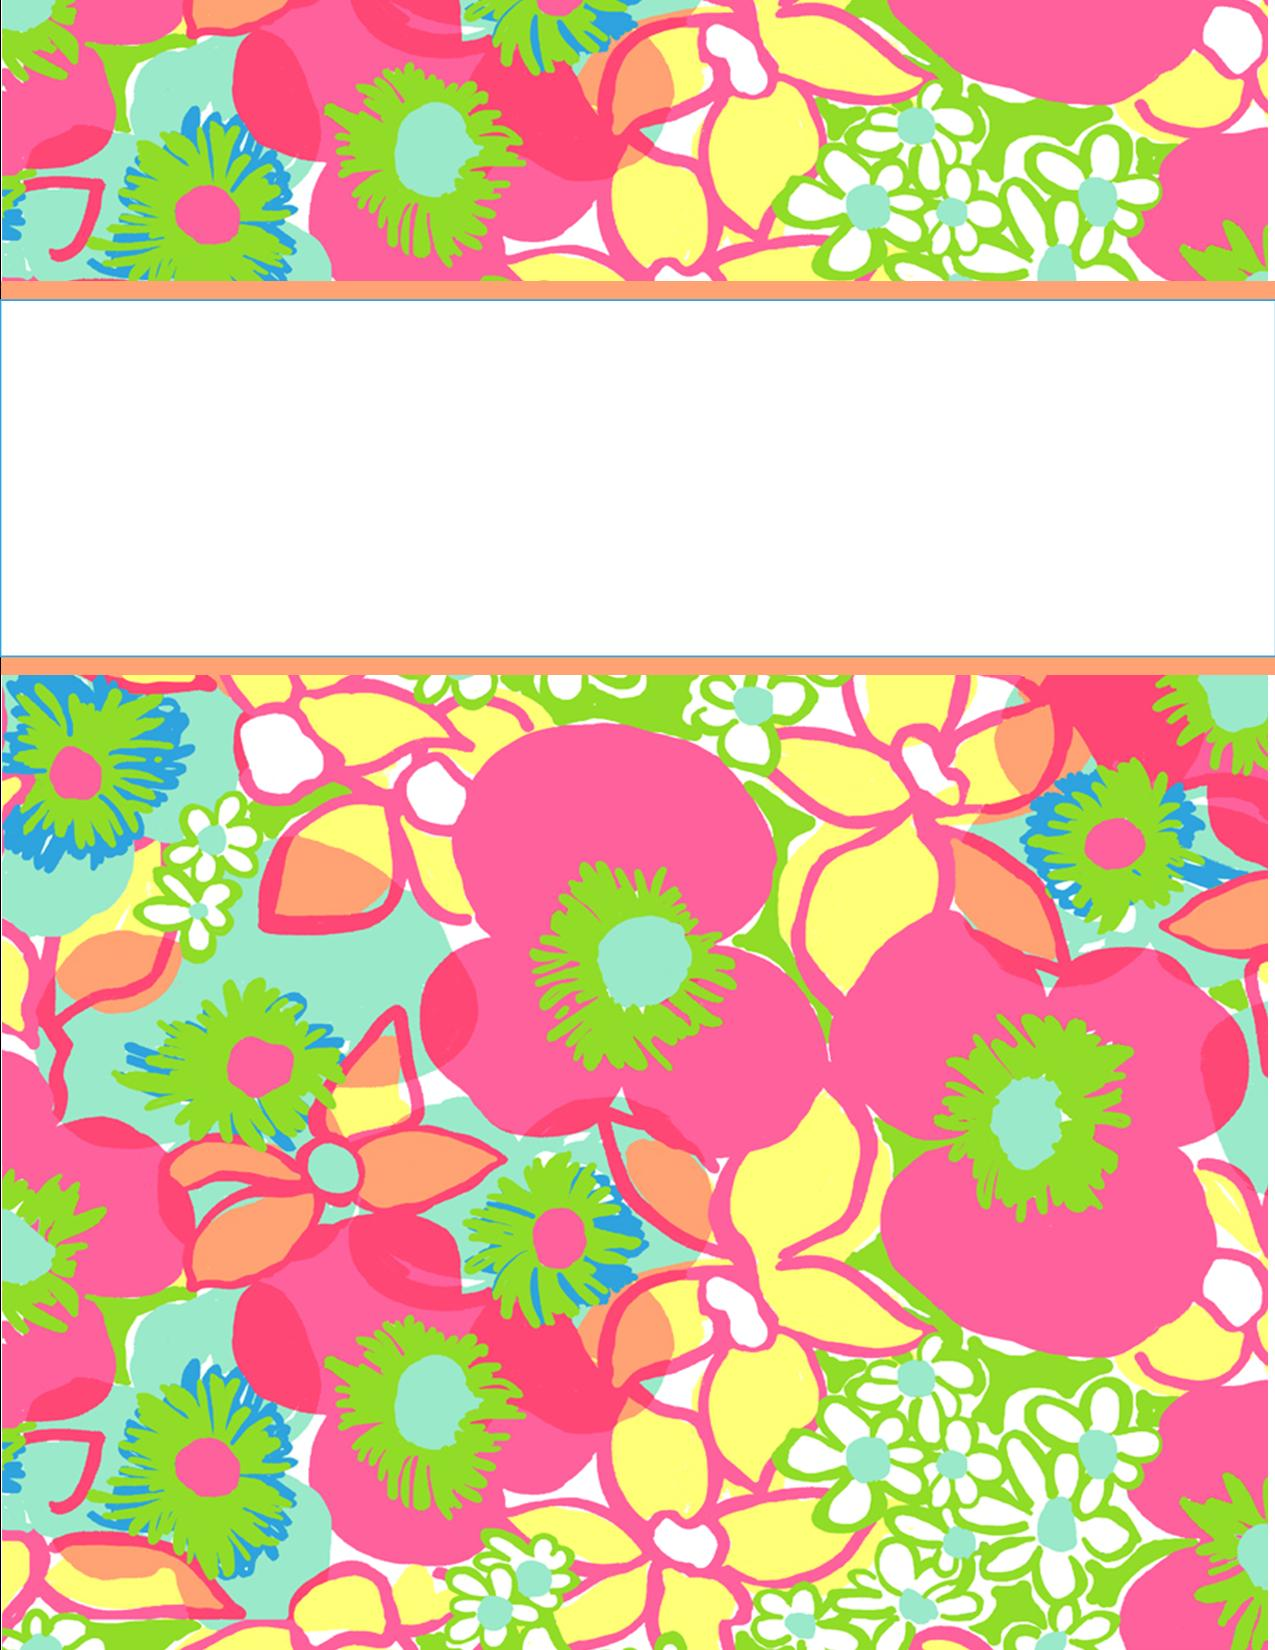 This is a photo of Printable Binder Cover Templates intended for printable cute recipe